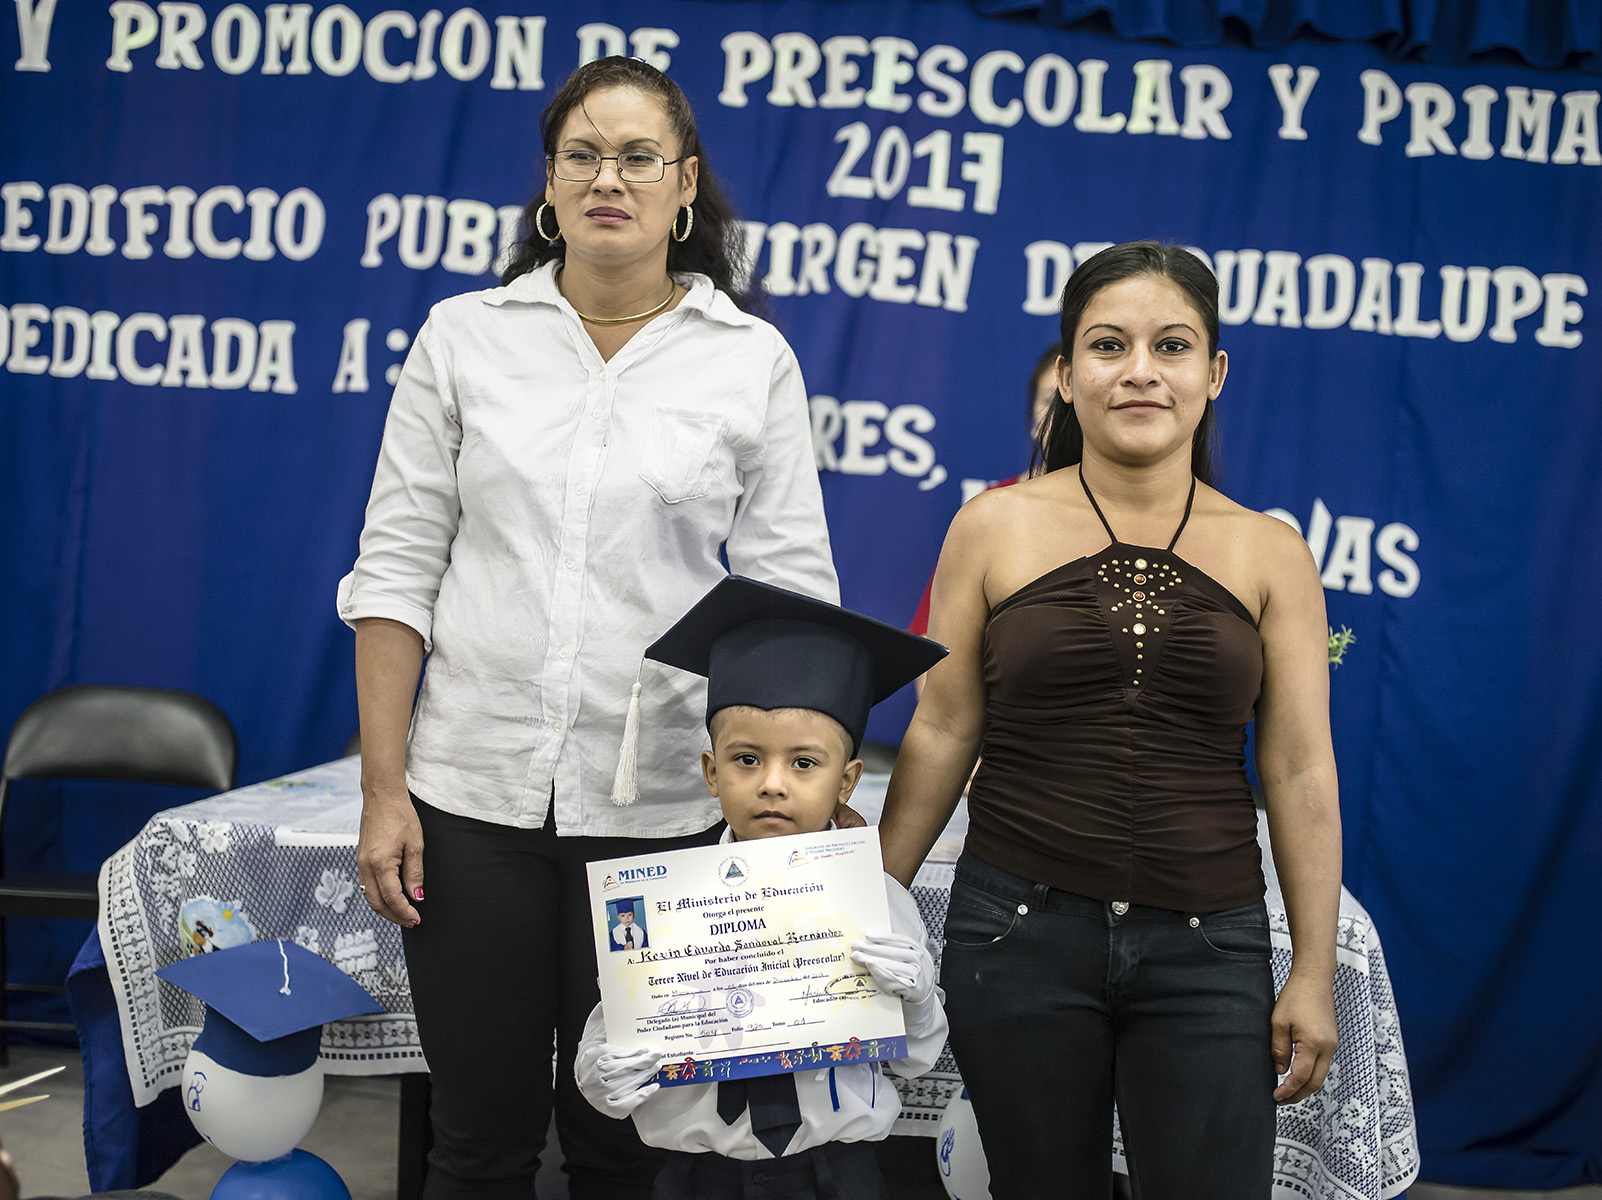 Marjorie and her son Kevin receive his diploma for preschool.